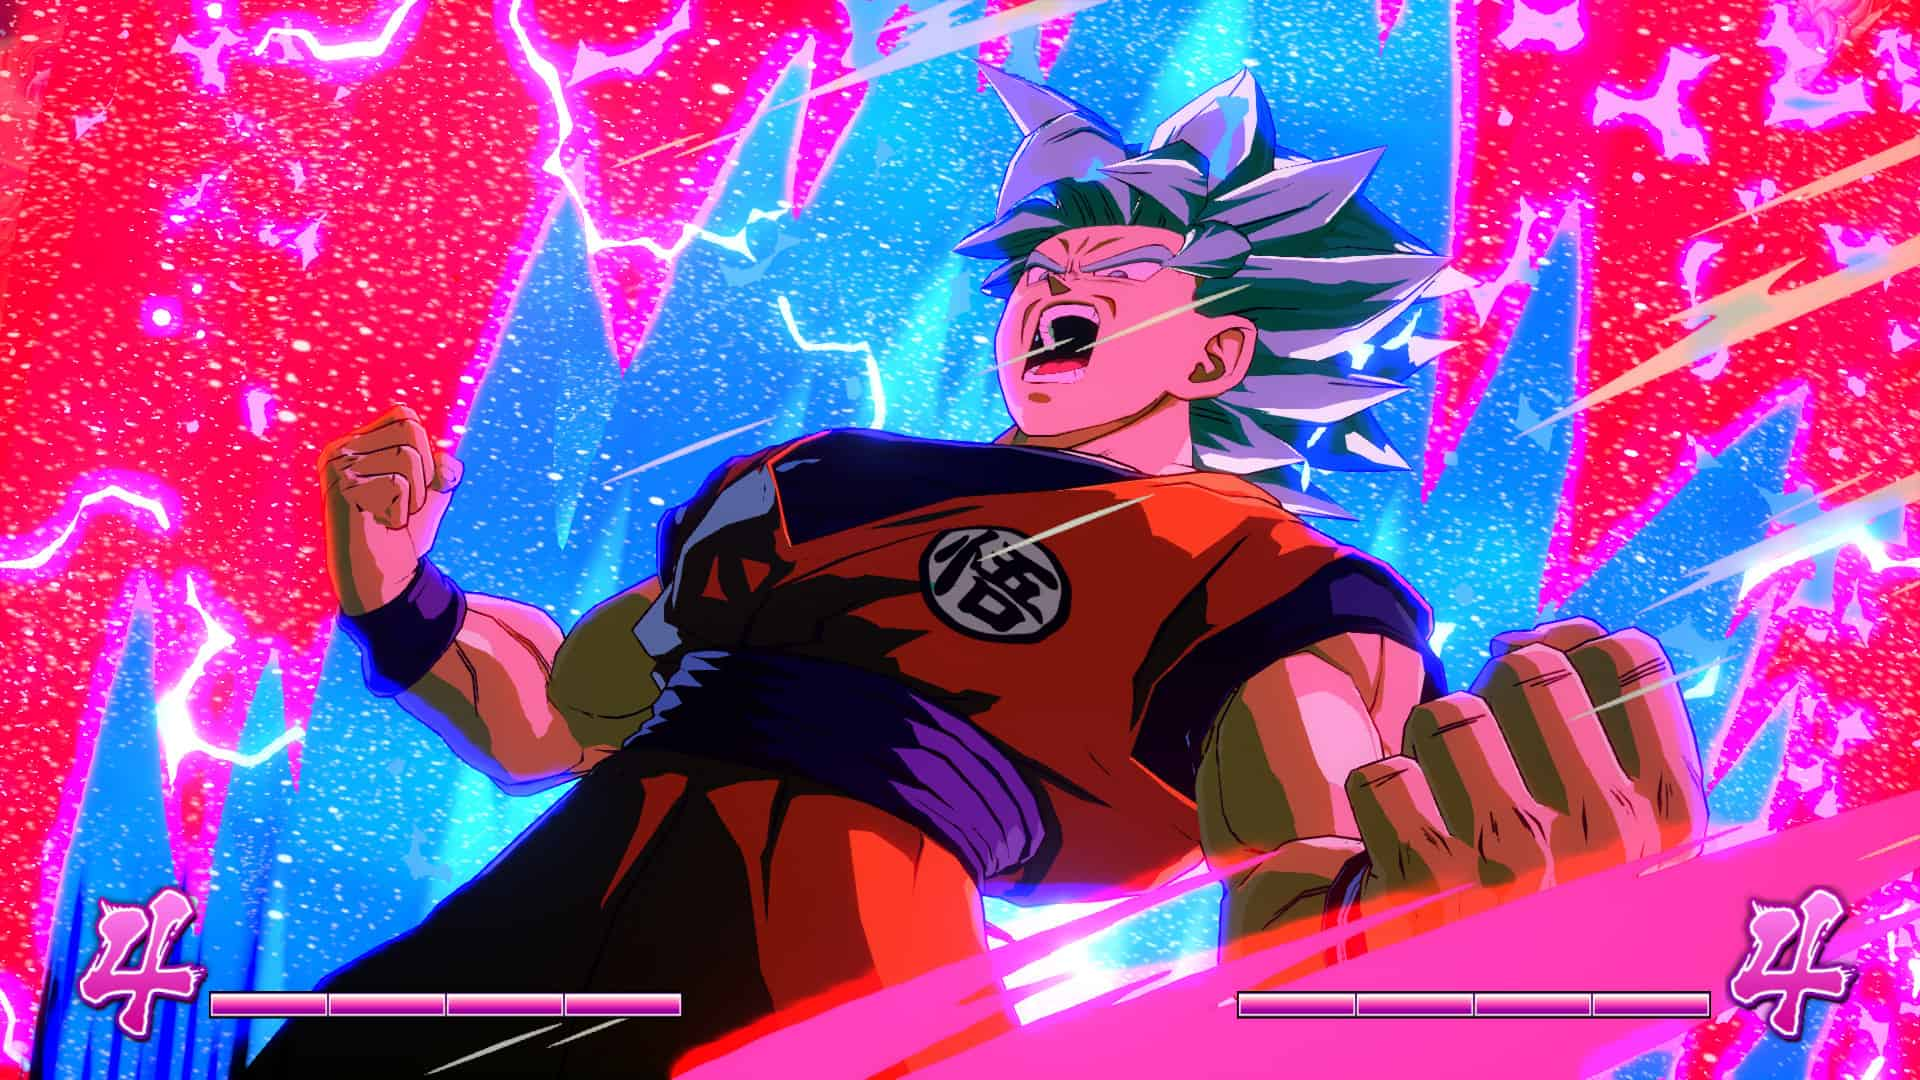 DRAGON BALL FighterZ requisiti di sistema pc - DRAGON BALL FighterZ - Requisiti di Sistema finali